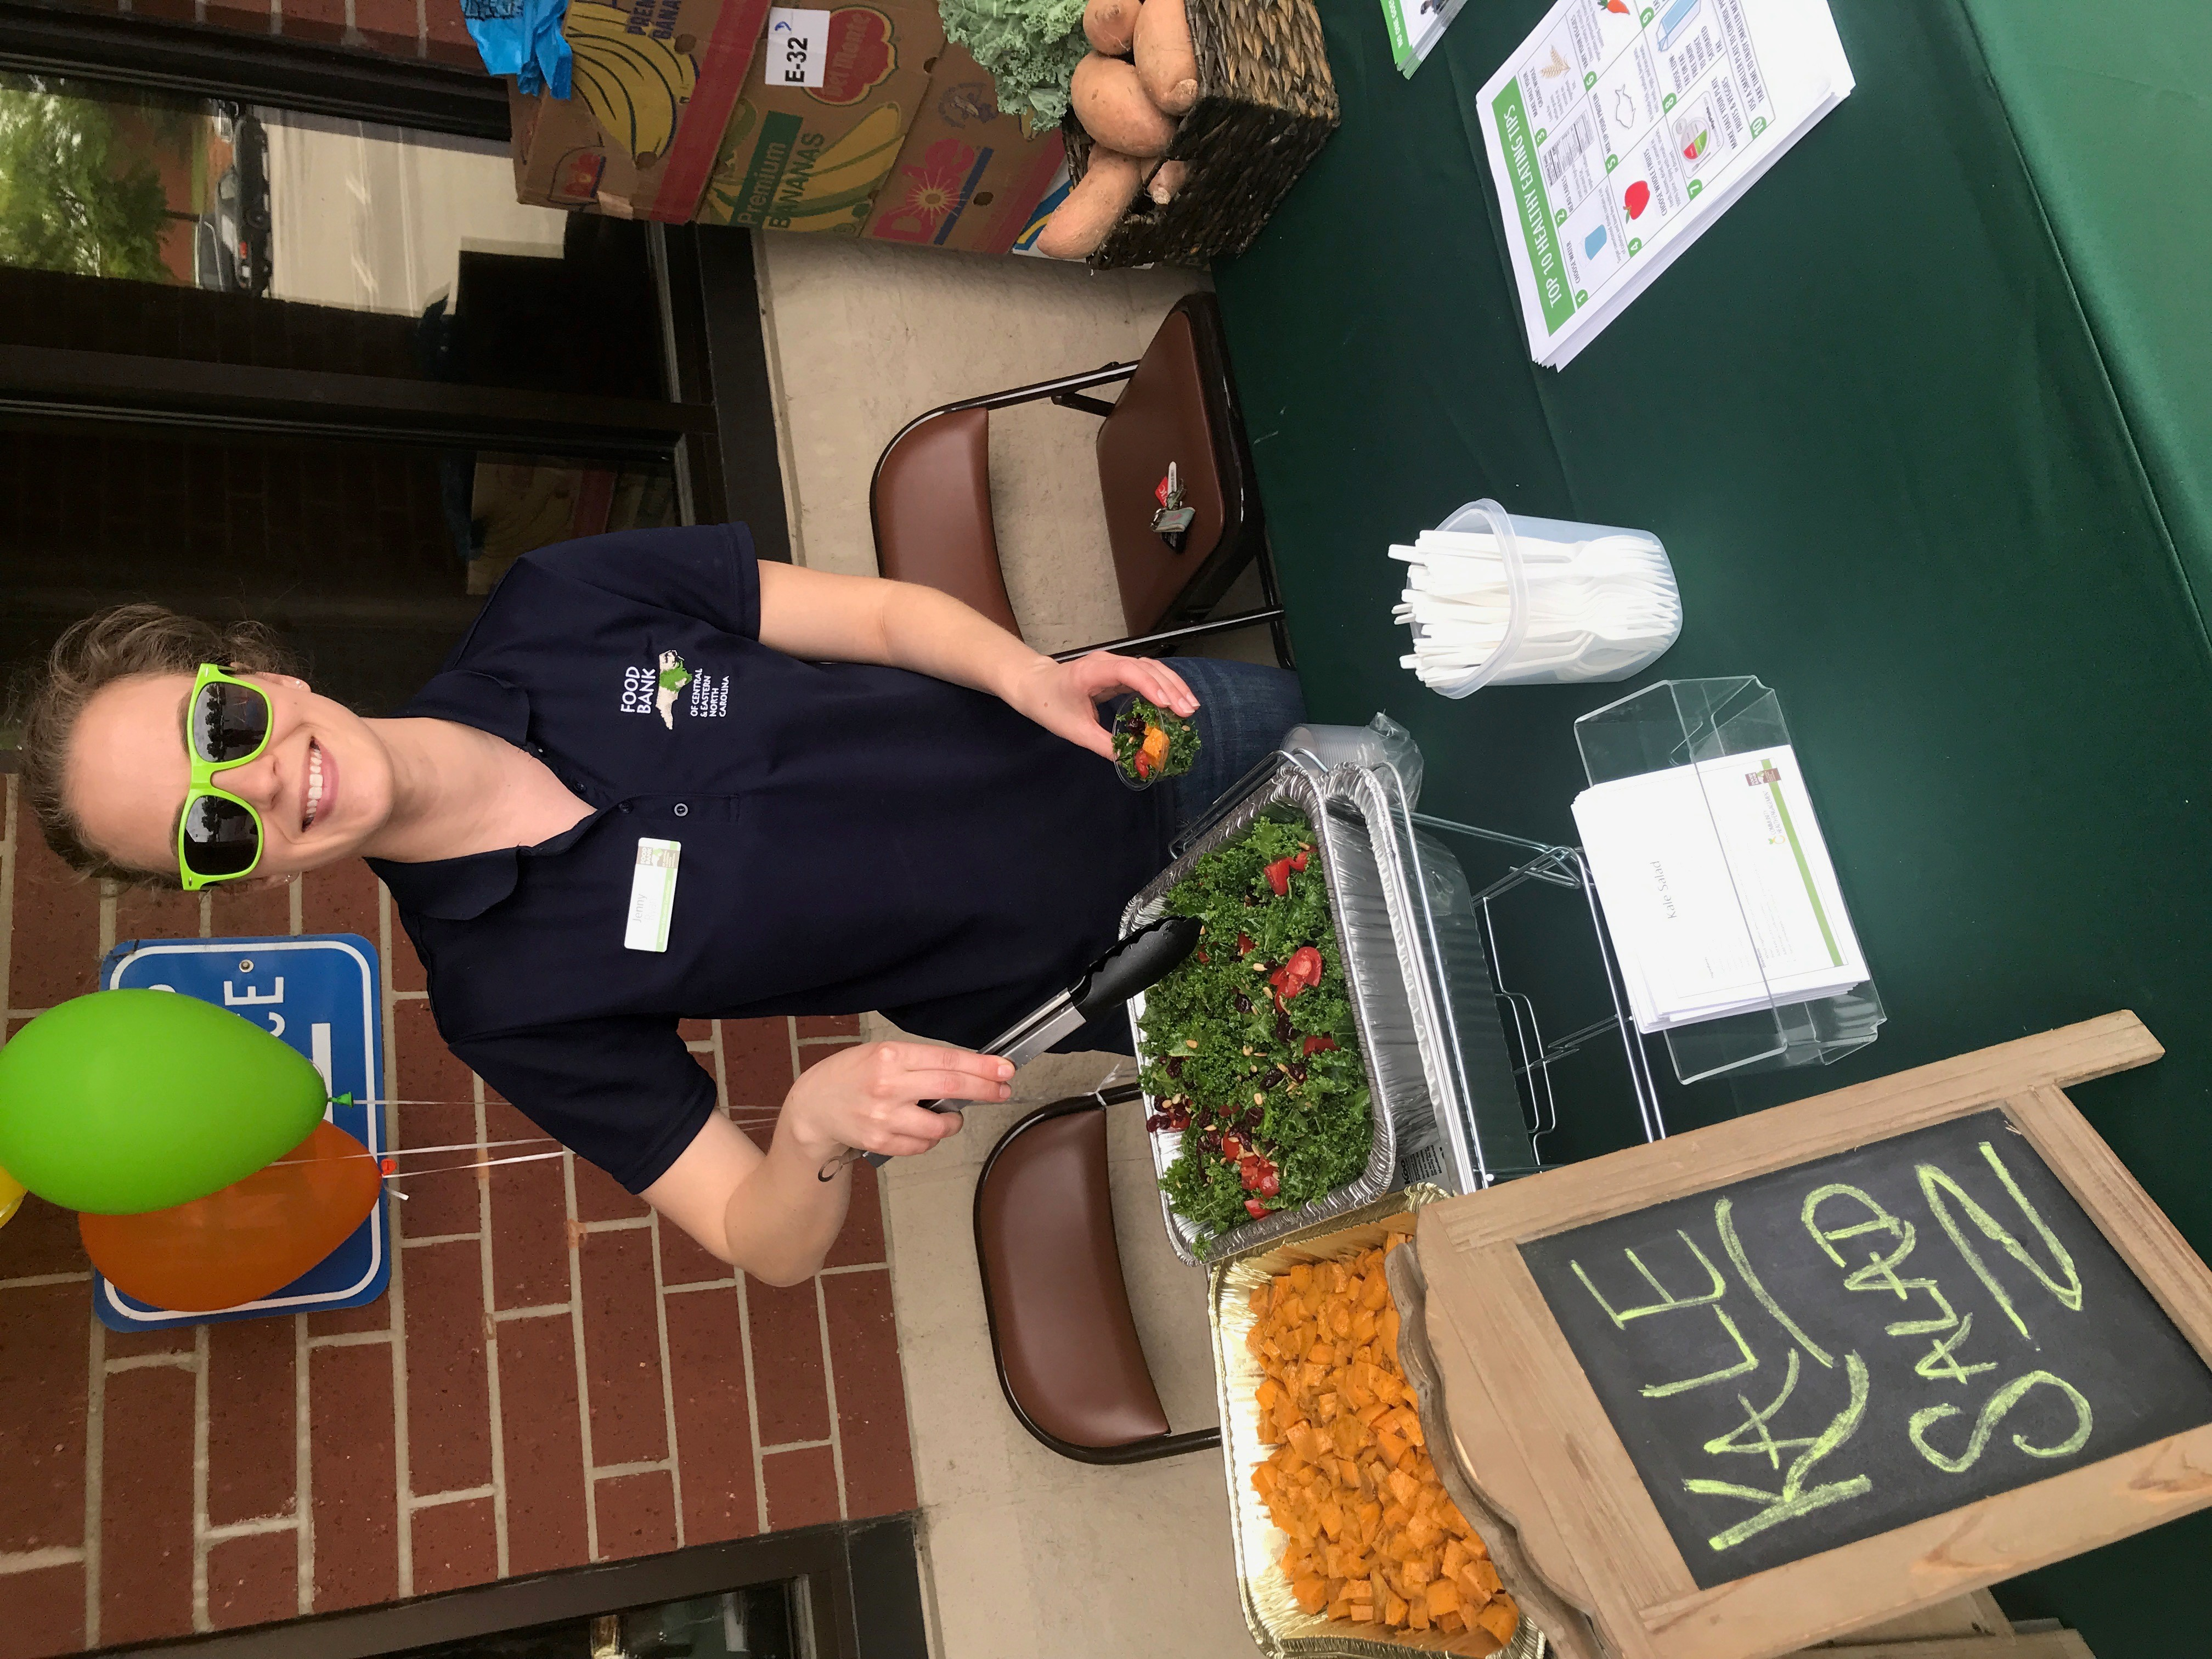 woman serving healthy meals